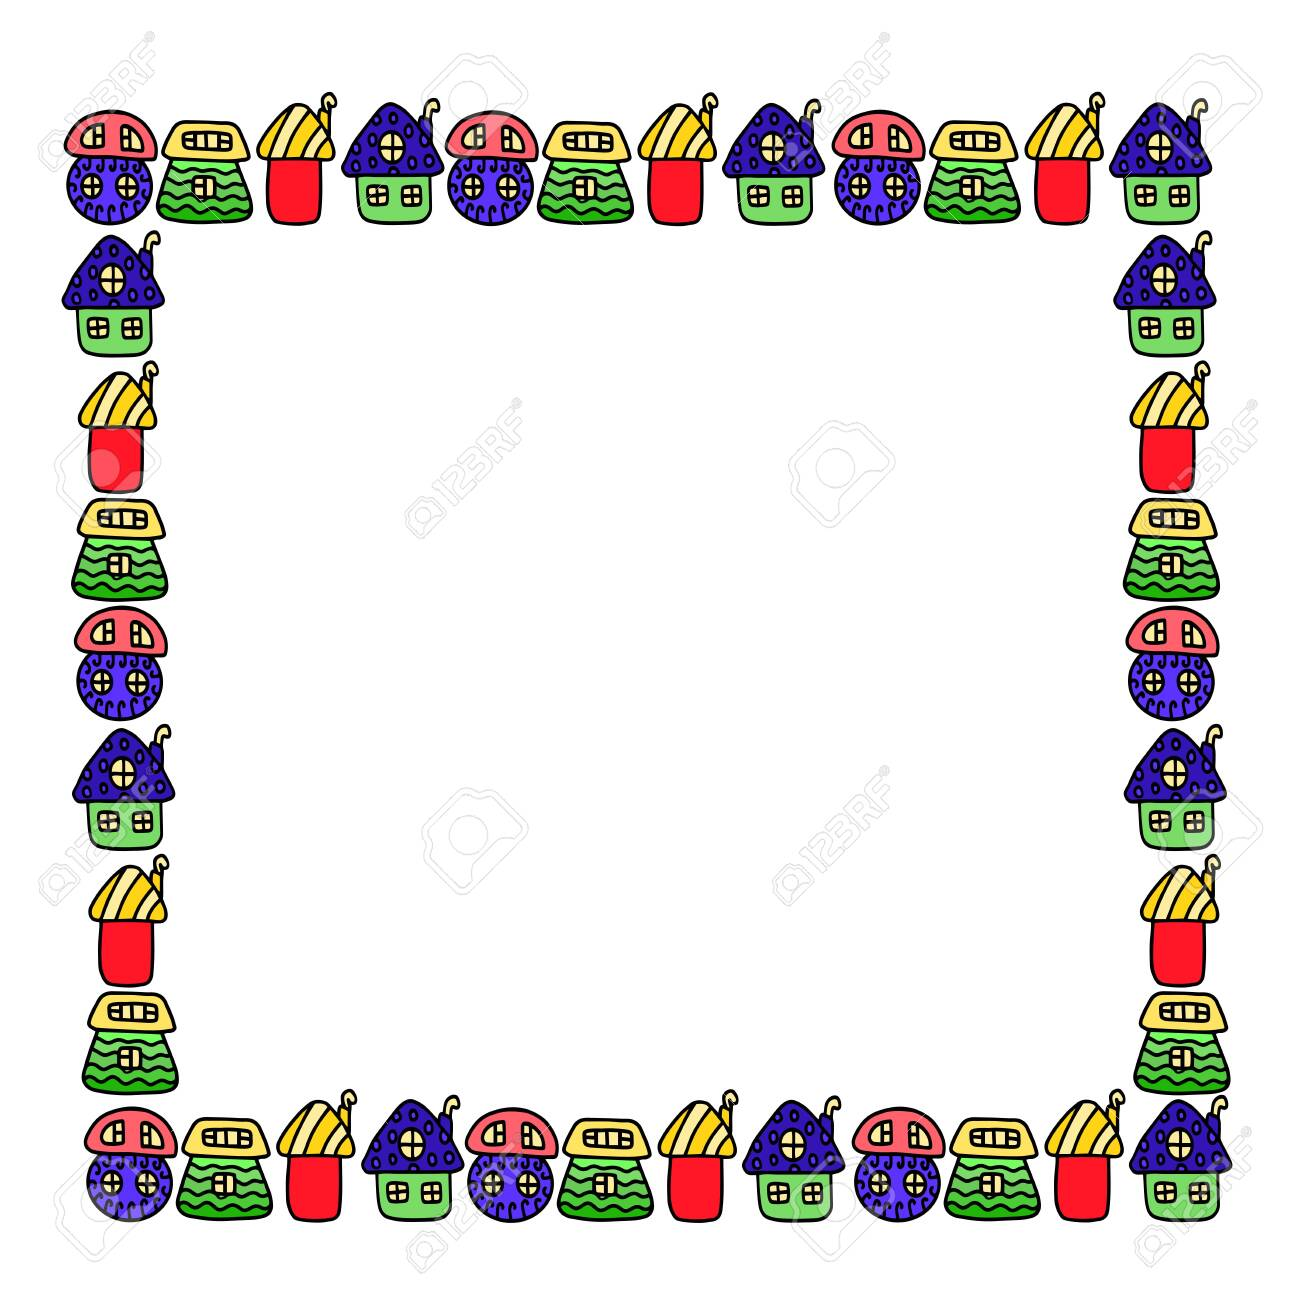 Beautiful children's frame for photos from children's homes. - 147583498